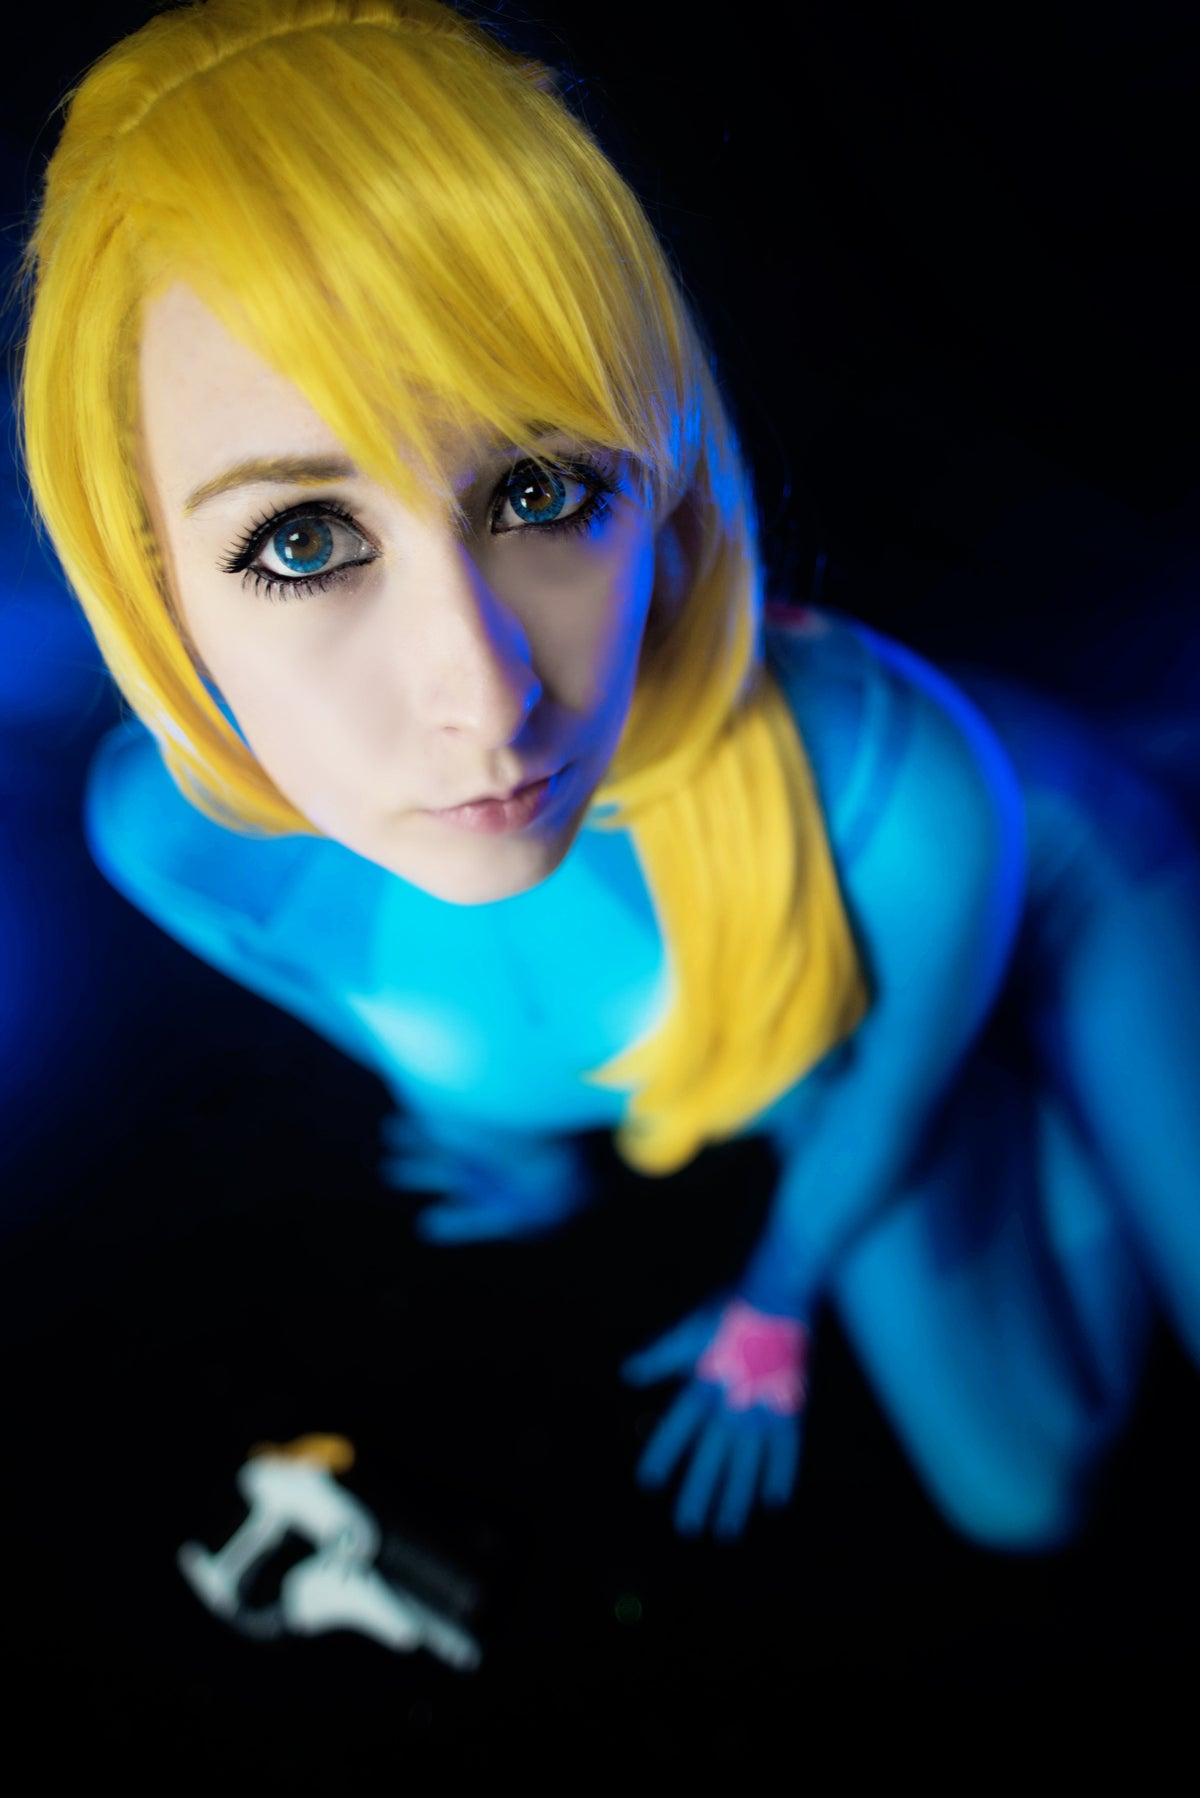 Image of Zero Suit Samus Photoset